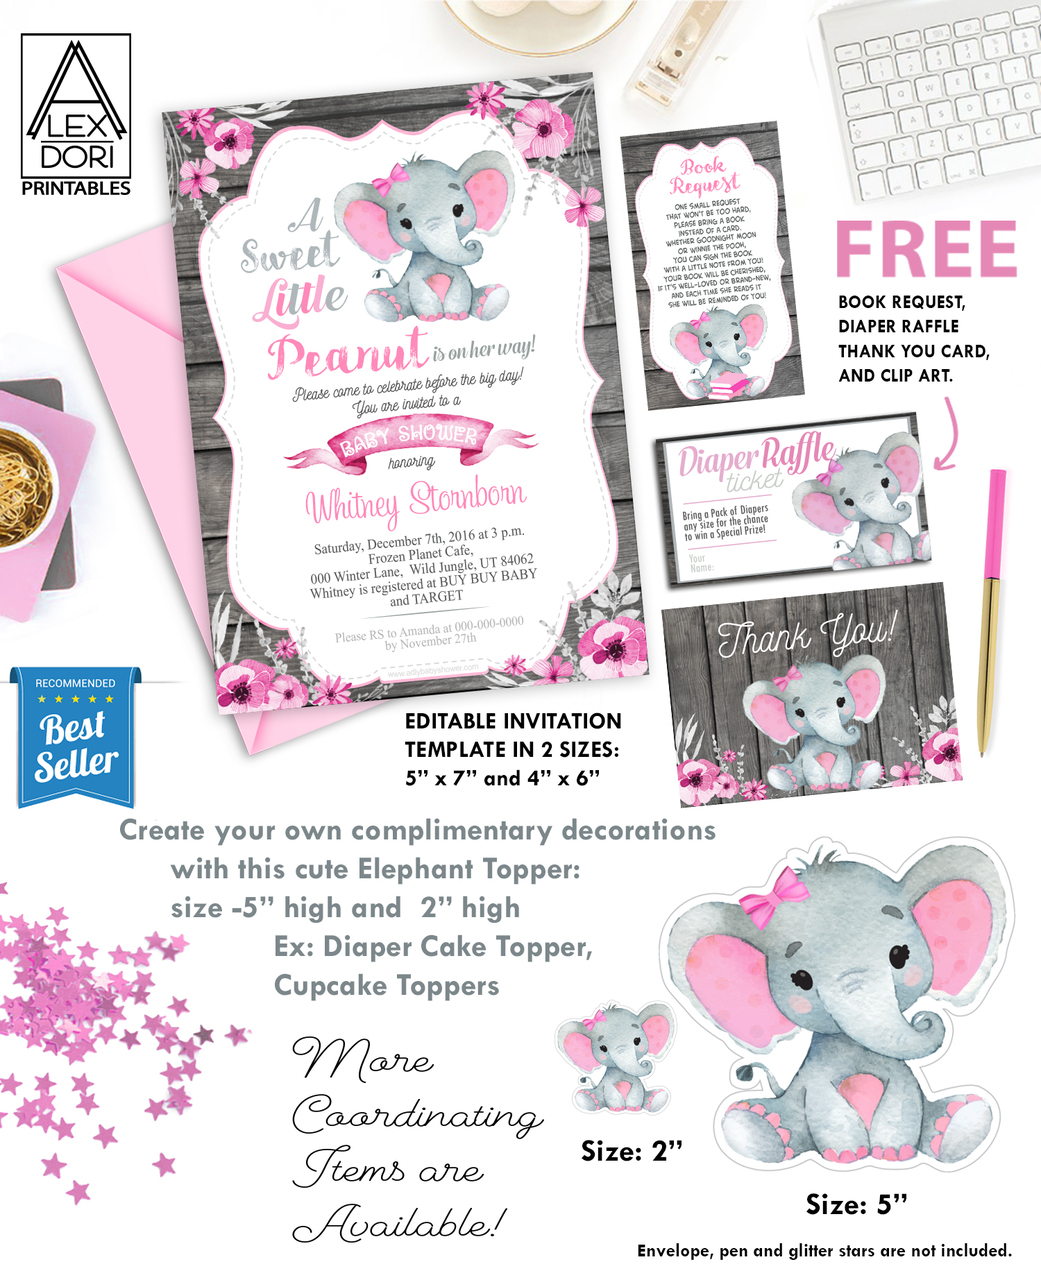 photograph regarding Printable Girl Baby Shower Invitations identified as Lady Elephant crimson and grey Little one Shower Invitation, Picket Record -Printable Invitation - Peanut Invite-Female Kid Shower-Totally free Diaper Raffle